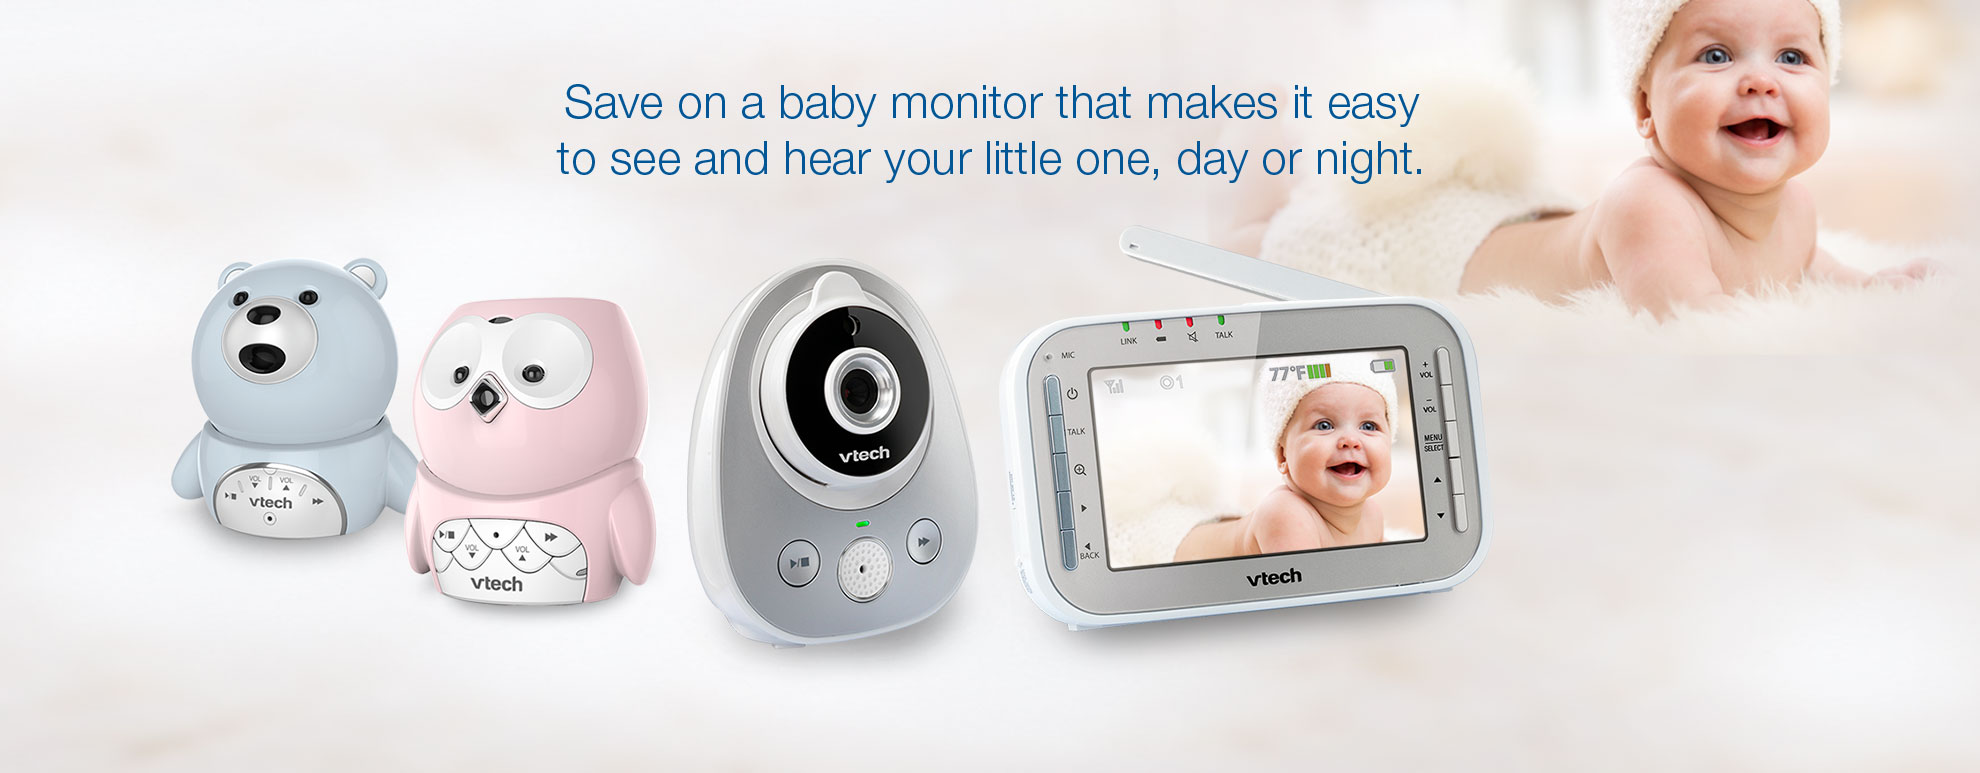 Save on a baby monitor that makes it easy to see and hear your little one, day or night.